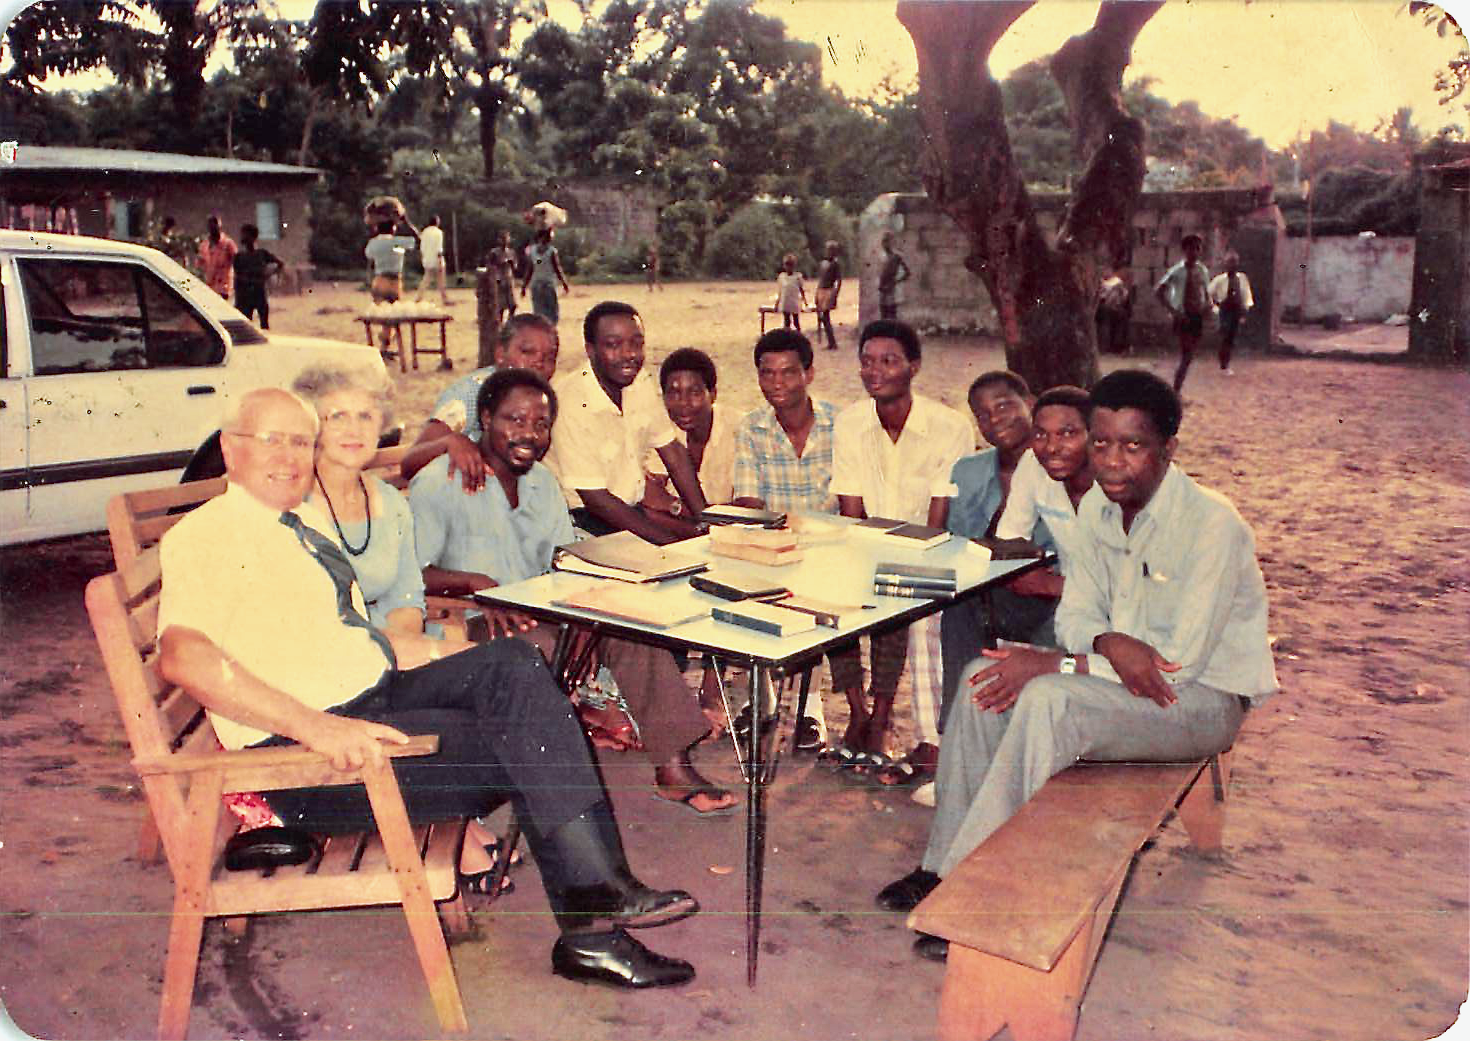 Elder R. Bay Hutchings and Sister Jean Hutchings, the first two missionaries in Zaire (now the Democratic Republic of the Congo) teach the first missionary lesson at the Banza home in Kinshasa in 1986.